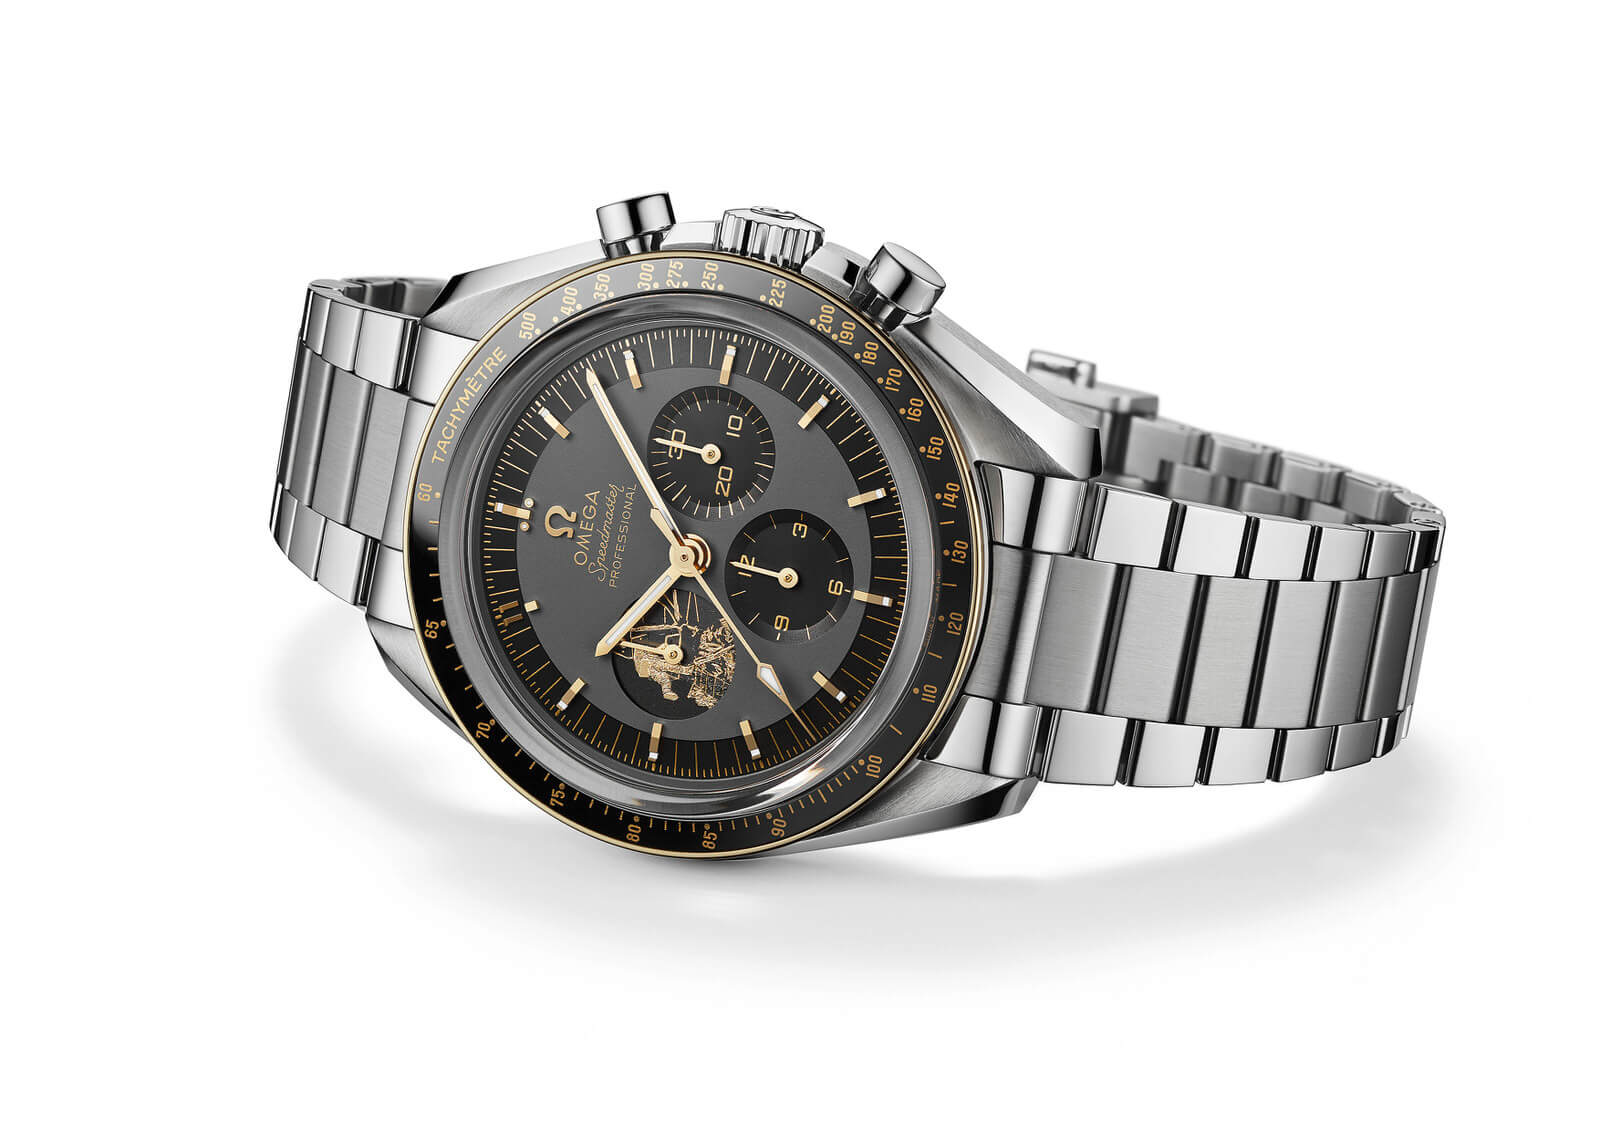 Speedmaster Apollo 11 omega